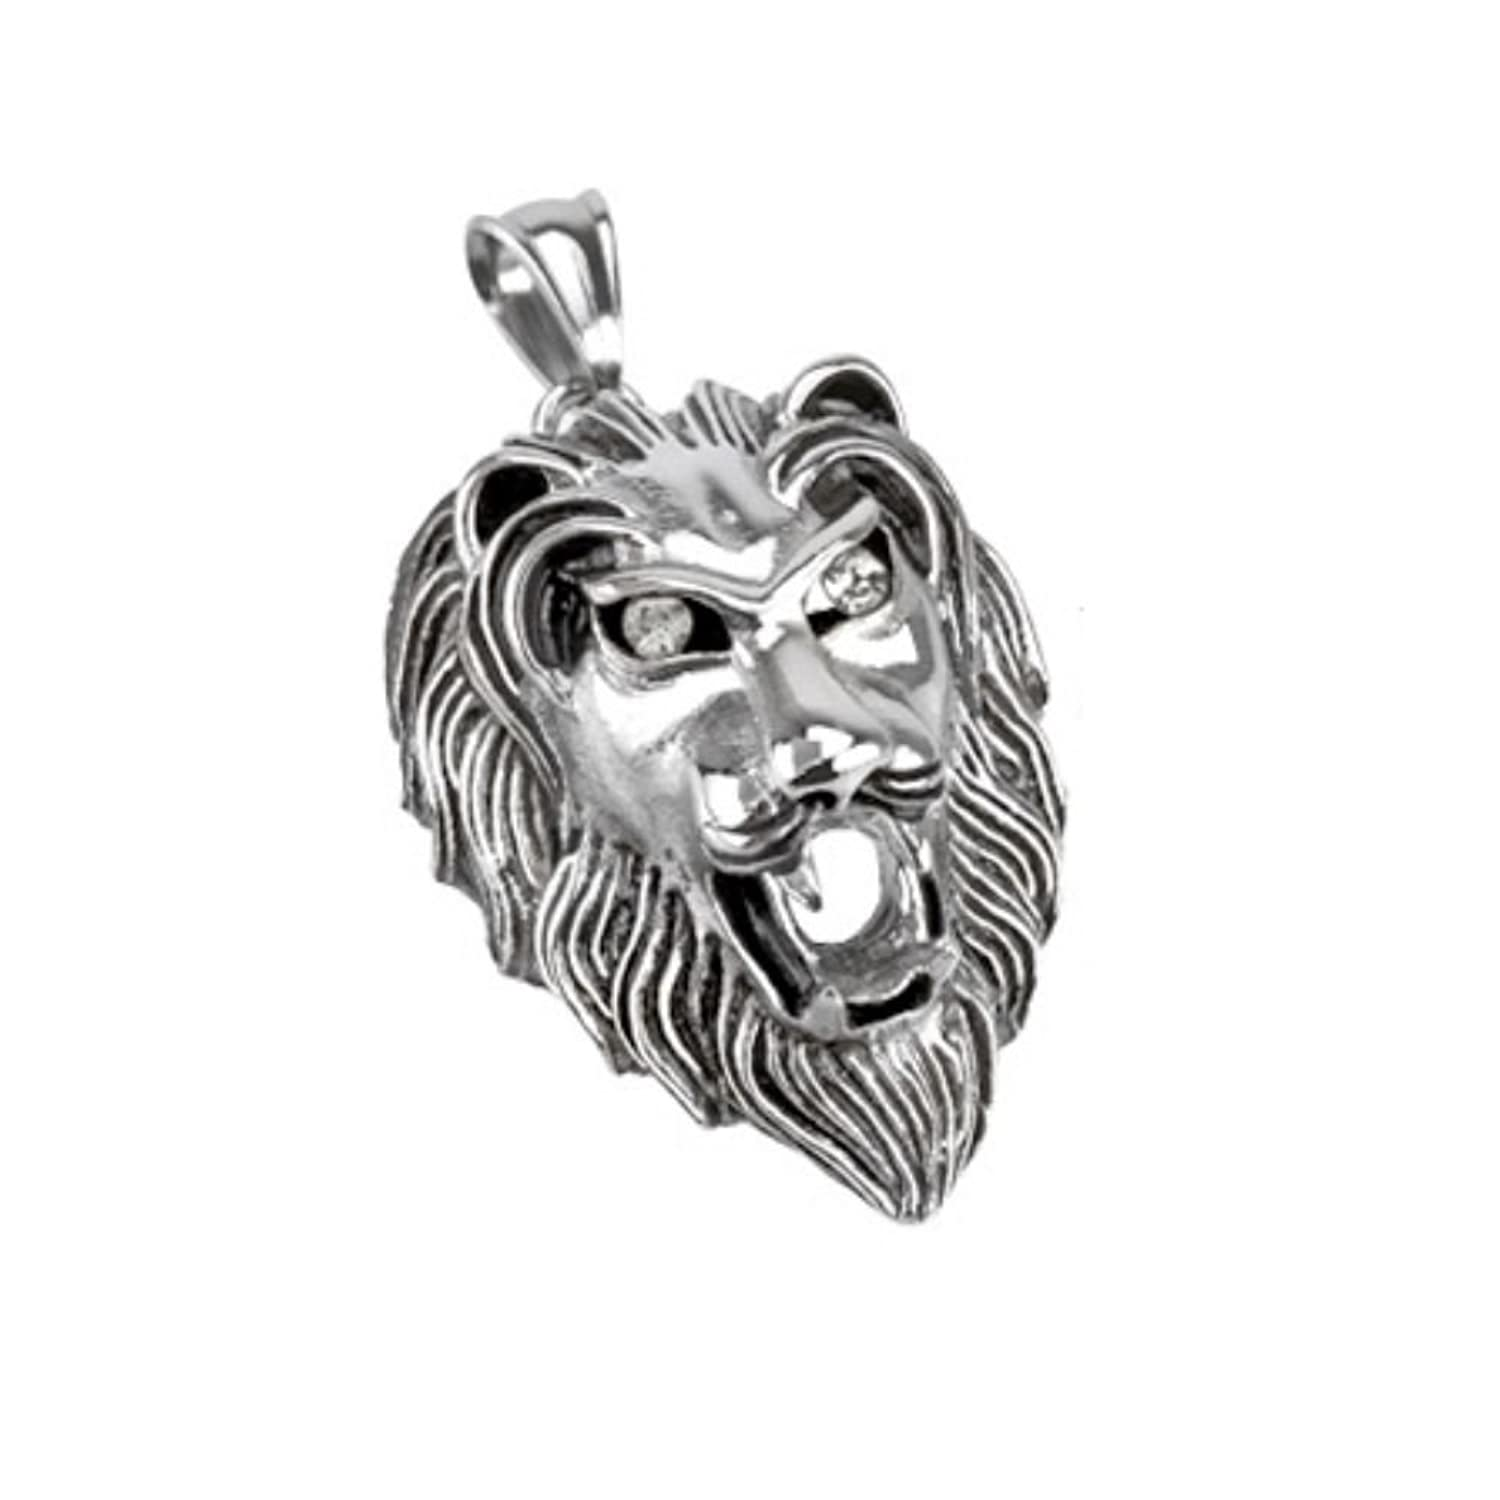 metallic lyst product jewelry normal for gallery necklace lion with head men pendant in gucci